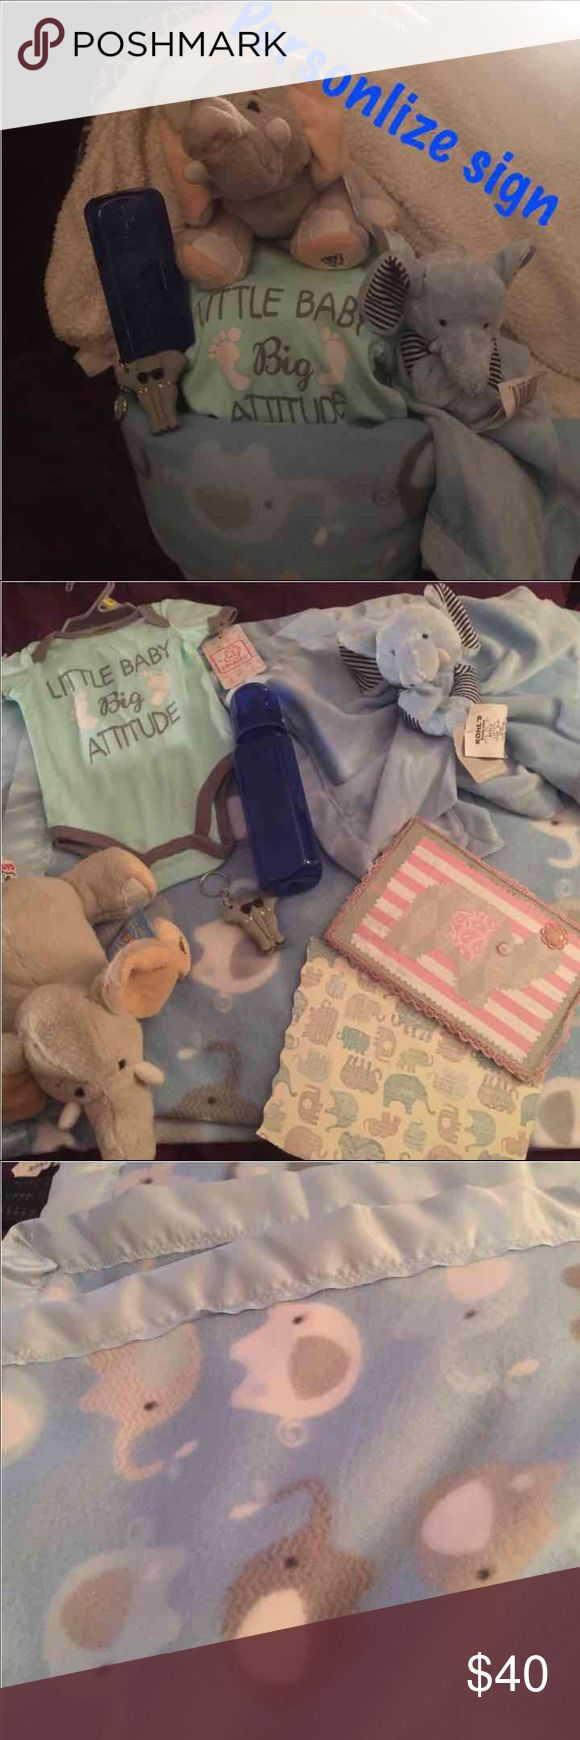 Boy elephant diaper cake 40x40 fleece elephant blanket with satin trim Little baby big attitude onesie  Webkinz stuff elephant  Elephant rattle blanket Bottle Elephant name clippers Personalize elephant sign ( have girl one there for example) Luvs or Huggie diaper wrap in plastic with ribbon Accessories